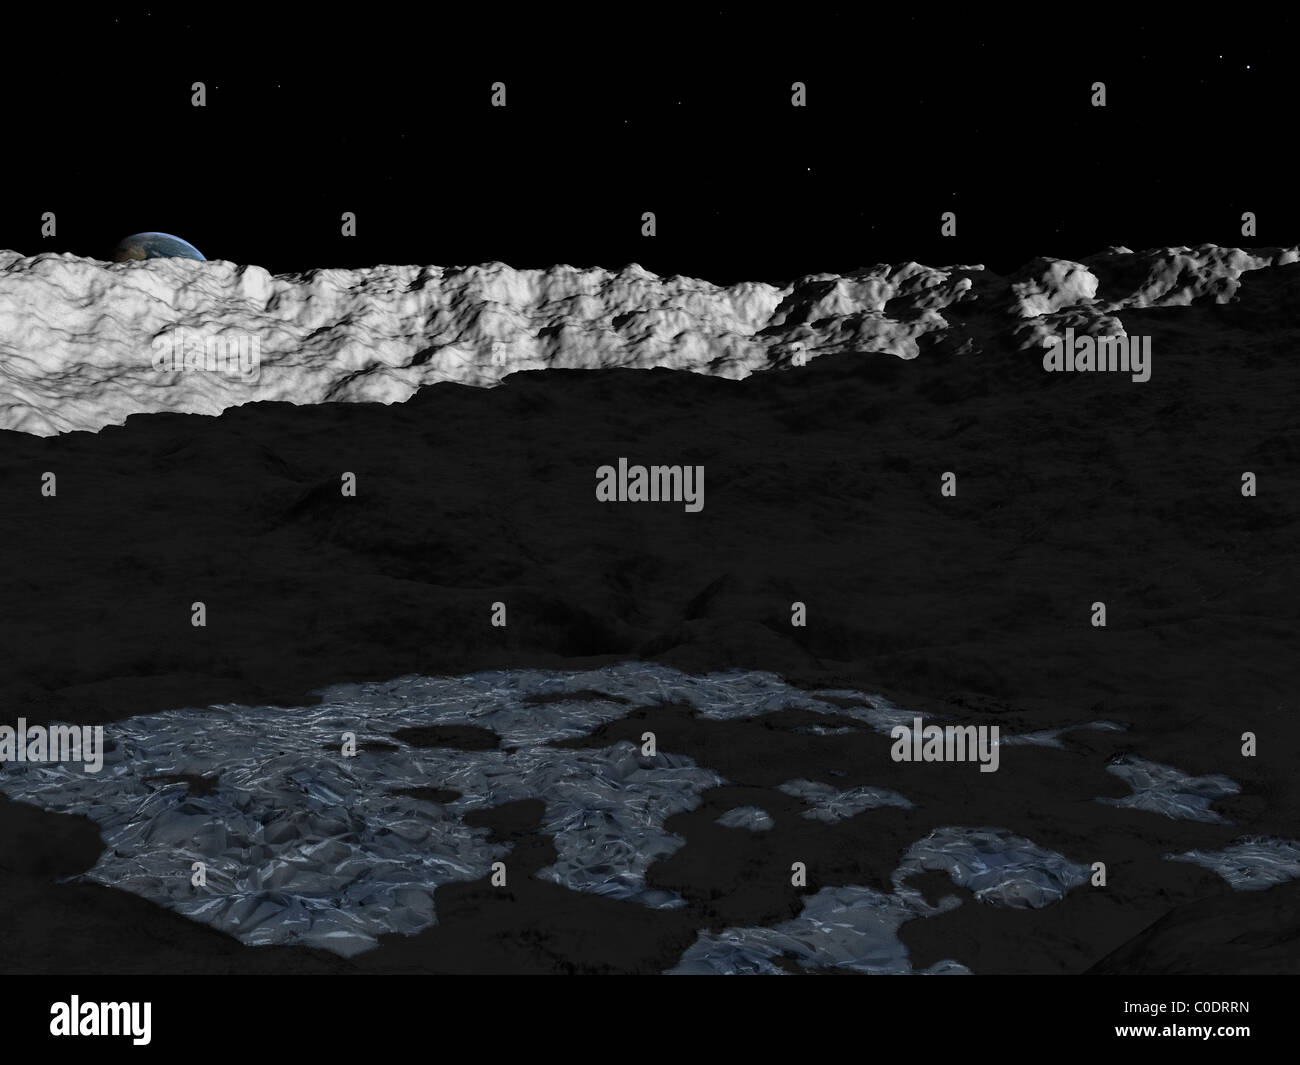 Illustration of a deep crater on the surface of the moon. - Stock Image